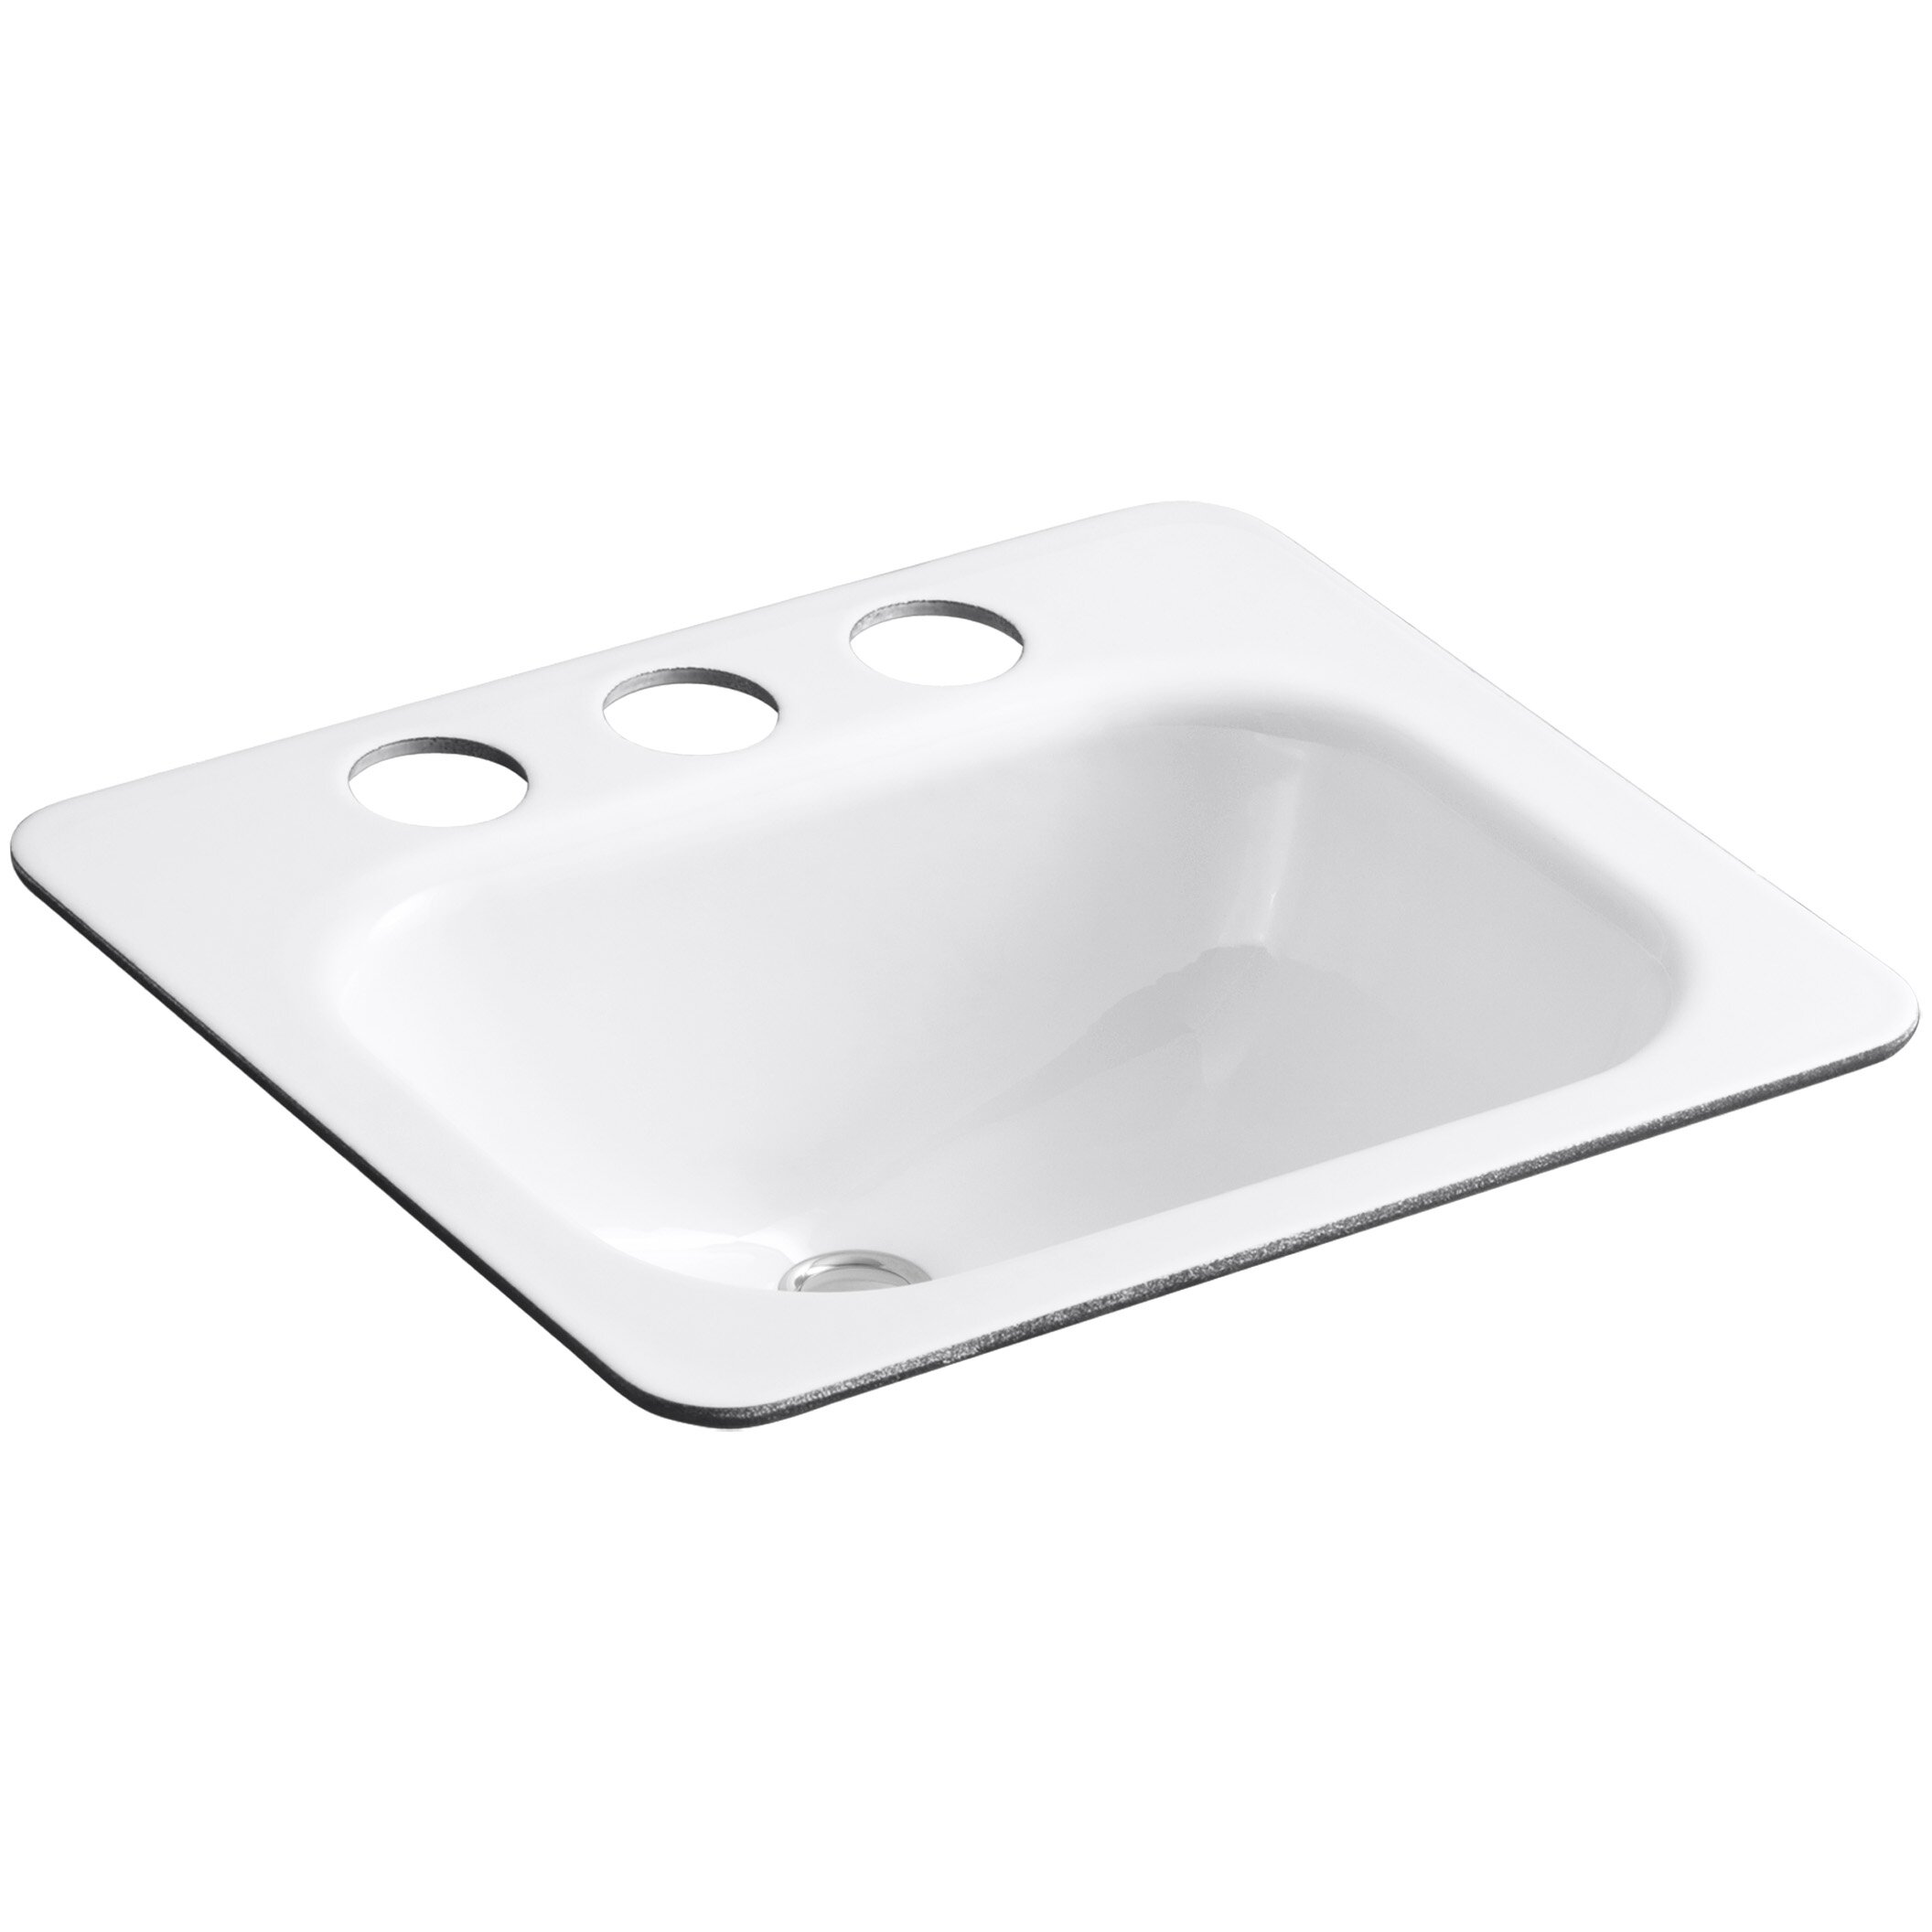 undermount bathroom sink with faucet holes kohler tahoe undermount bathroom sink with oversize 8 25816